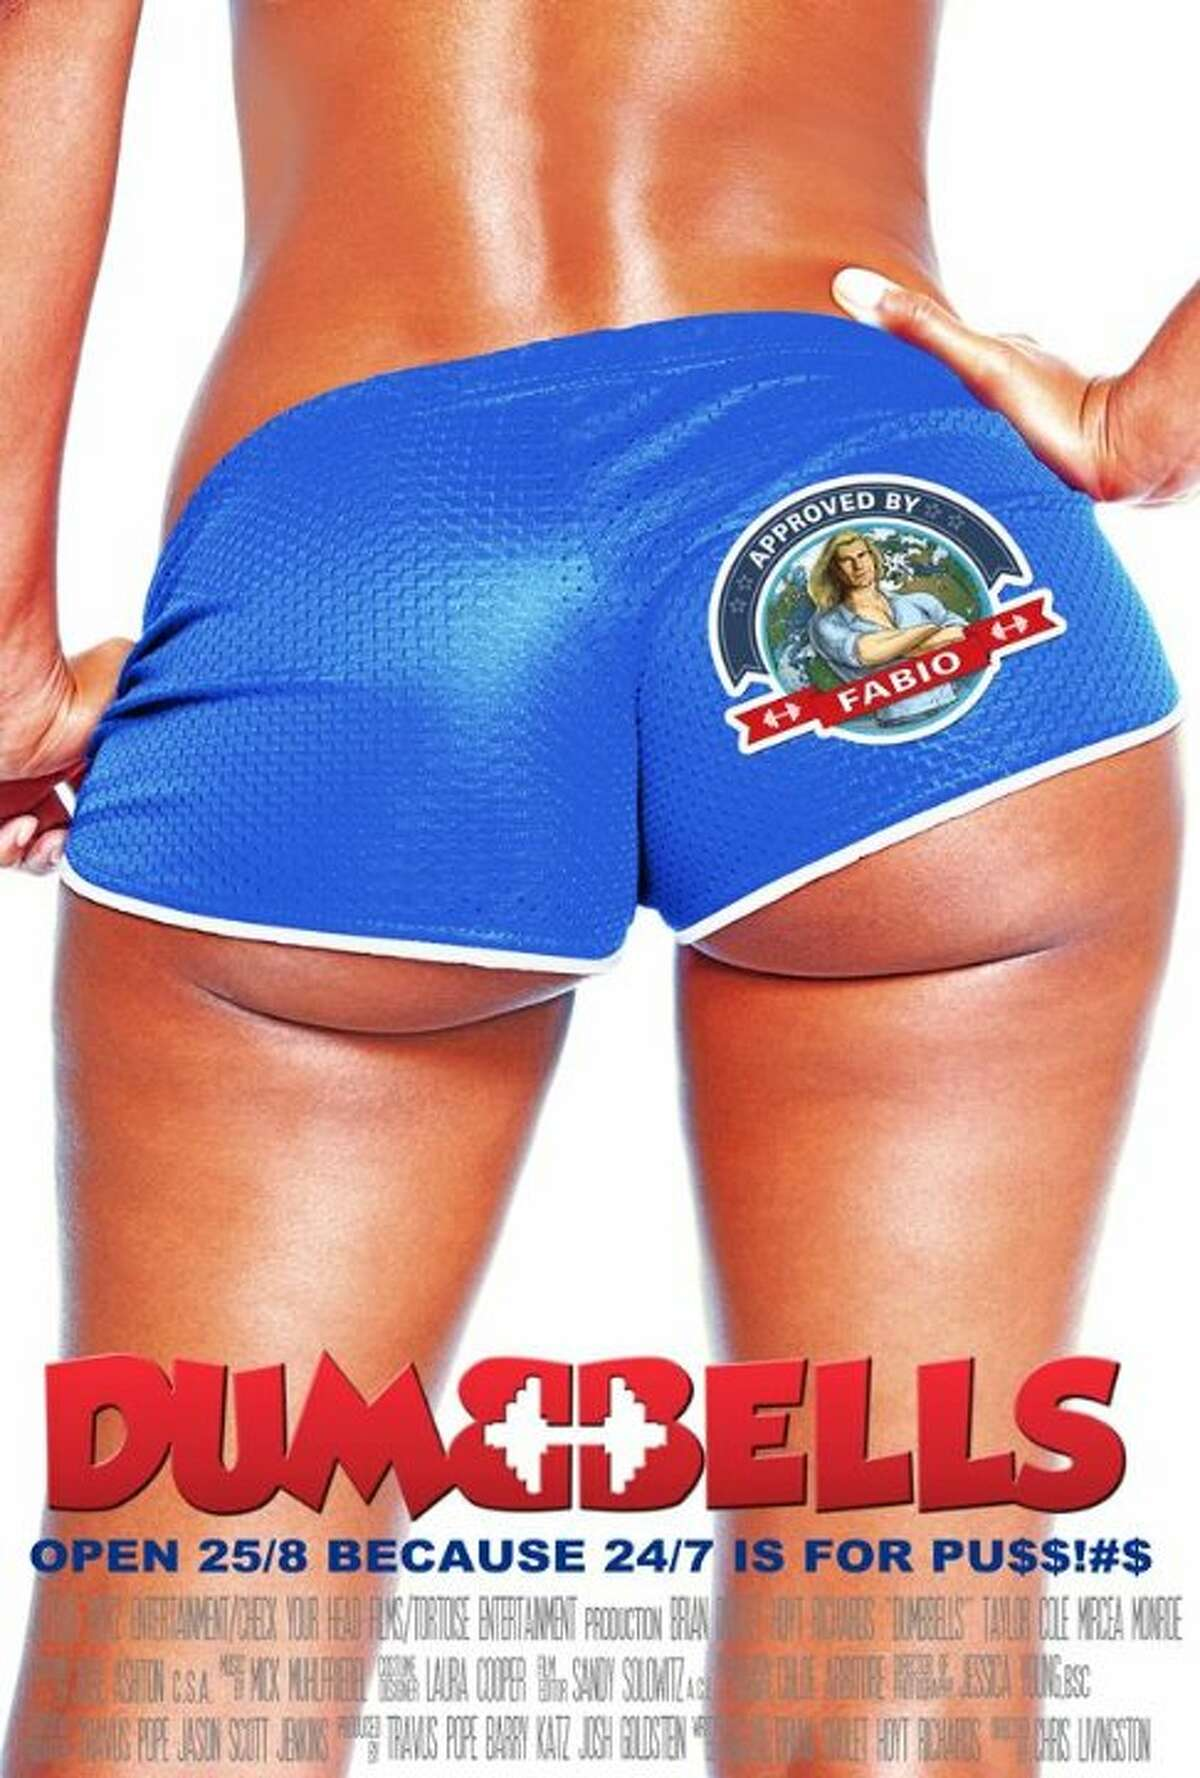 """Dumbbells Starring: Mircea Monroe, Taylor Cole, Jaleel White Release Date: Jan. 10 The movie focuses on Chris Long, a washed up college hoop star turned trainer, who's plagued by bitterness from past misfortunes. Having once had plans for a lucrative NBA career and """"the easy life,"""" Chris' now finds himself in an existence that lacks purpose and direction. The story takes a turn when new owner, Jack Guy, a shallow Hollywood type, arrives on the scene. Armed with """"big ideas,"""" (and plenty of his own secrets) Jack unleashes a plan to turn the gym into a reality show. Conflict arises when Chris and most of the staff resist Jack's """"ideas"""" at all costs. Nothing goes as planned, but in the process, Chris and Jack forge an unexpected friendship. As a team, Chris and Jack are able to assist each other in facing their demons from the past, and as a result, they're able to lead the group down a path toward fulfilling all of their dreams."""